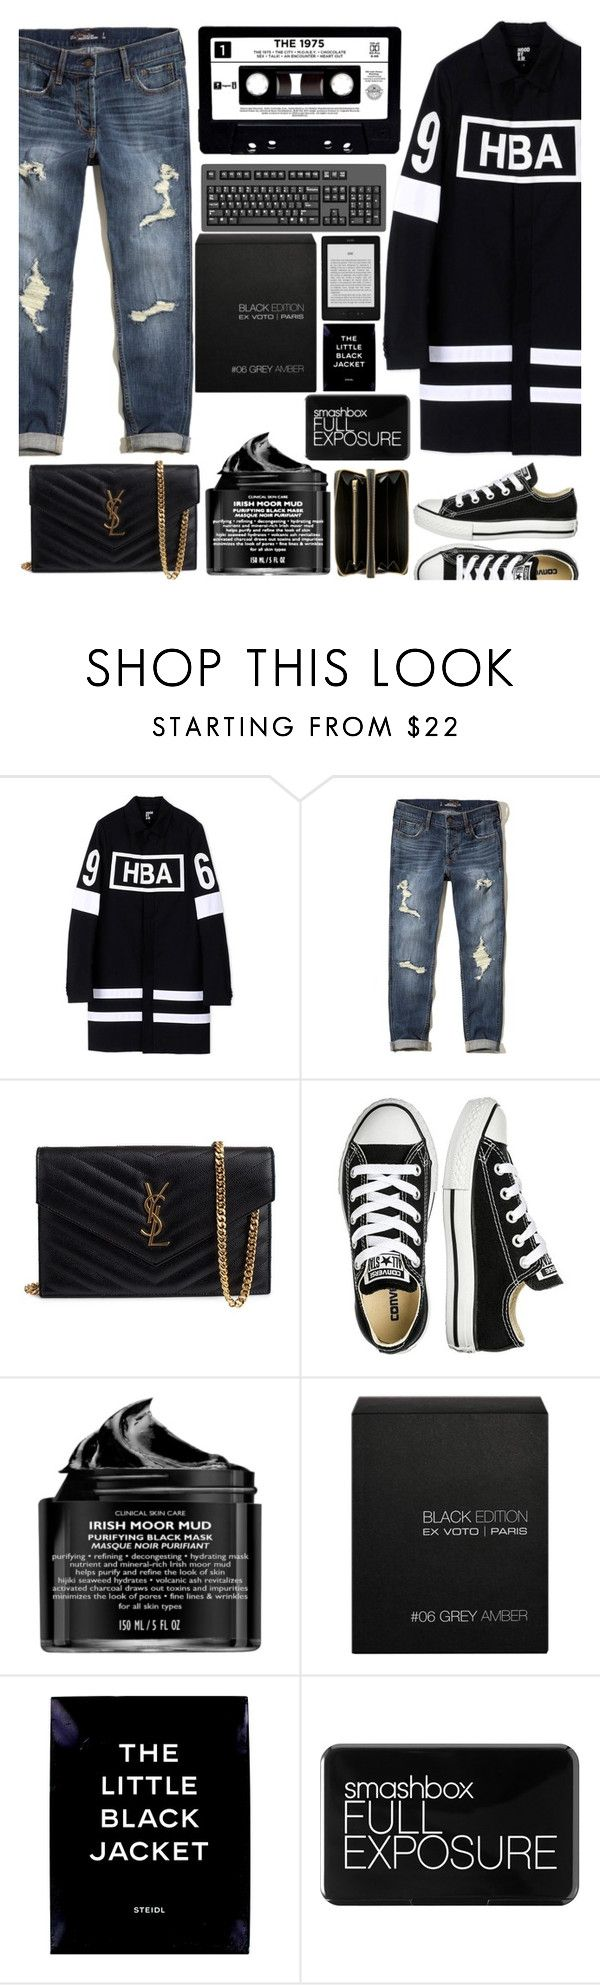 """""""I just realised that that's a men's coat but anything goes"""" by floralandmay ❤ liked on Polyvore featuring Hood by Air, Hollister Co., Yves Saint Laurent, Converse, Peter Thomas Roth, Ex Voto Paris, Smashbox and Comme des Garçons"""